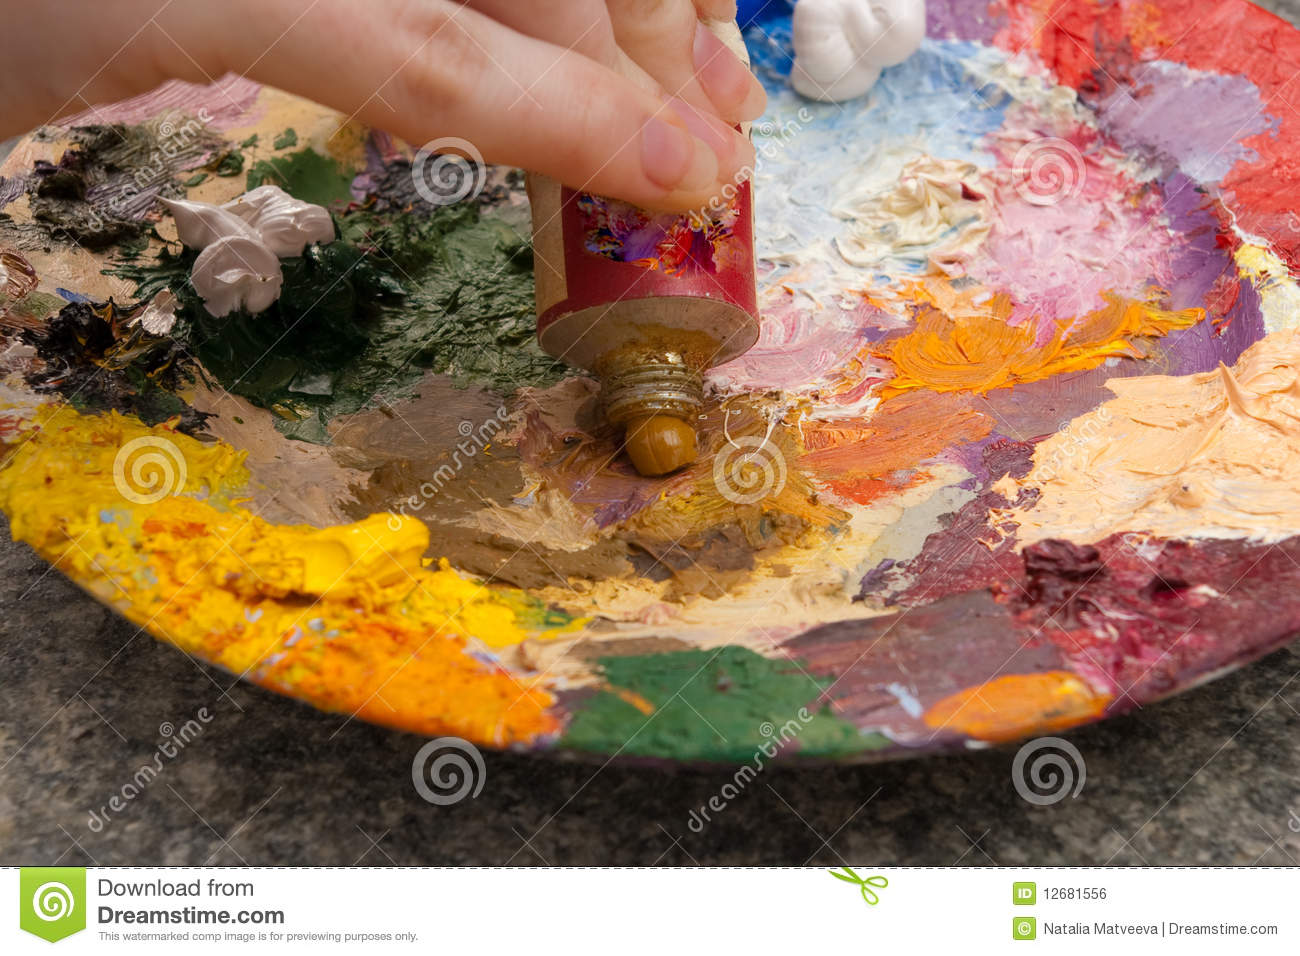 Hand squeezing yellow oilpaint on palette